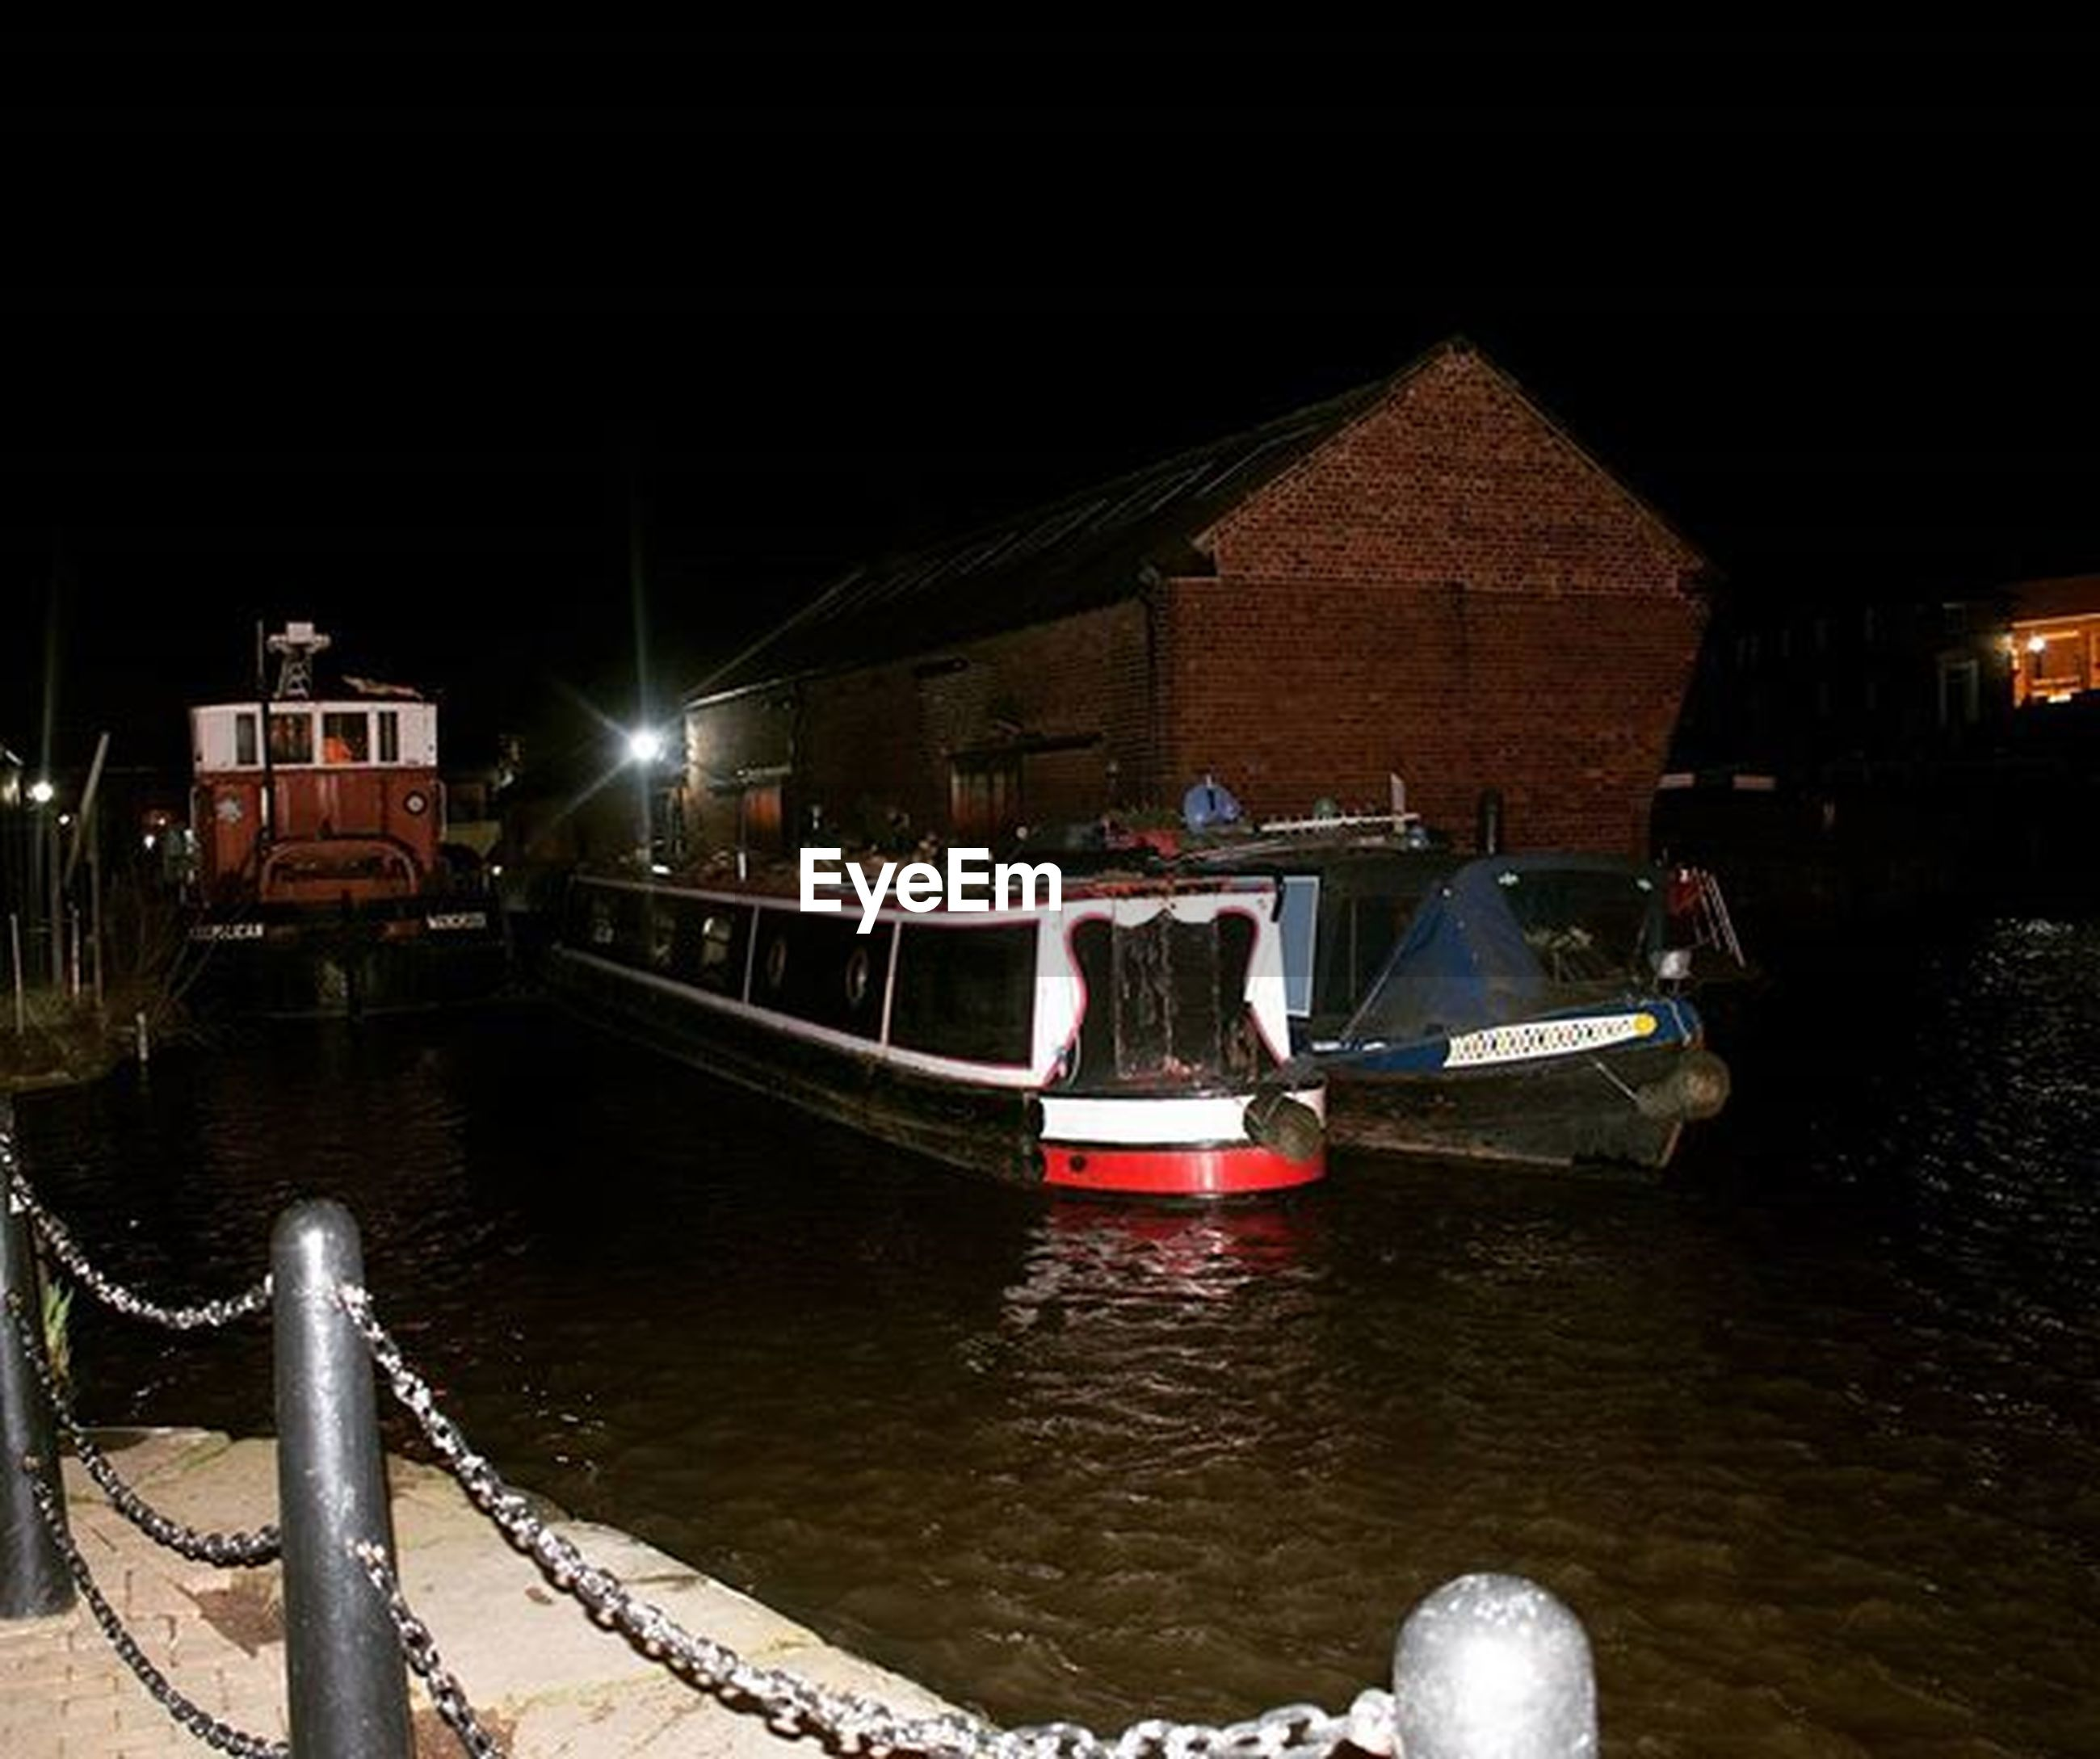 nautical vessel, water, transportation, mode of transport, boat, night, moored, built structure, illuminated, building exterior, architecture, reflection, canal, river, clear sky, waterfront, travel, outdoors, harbor, city